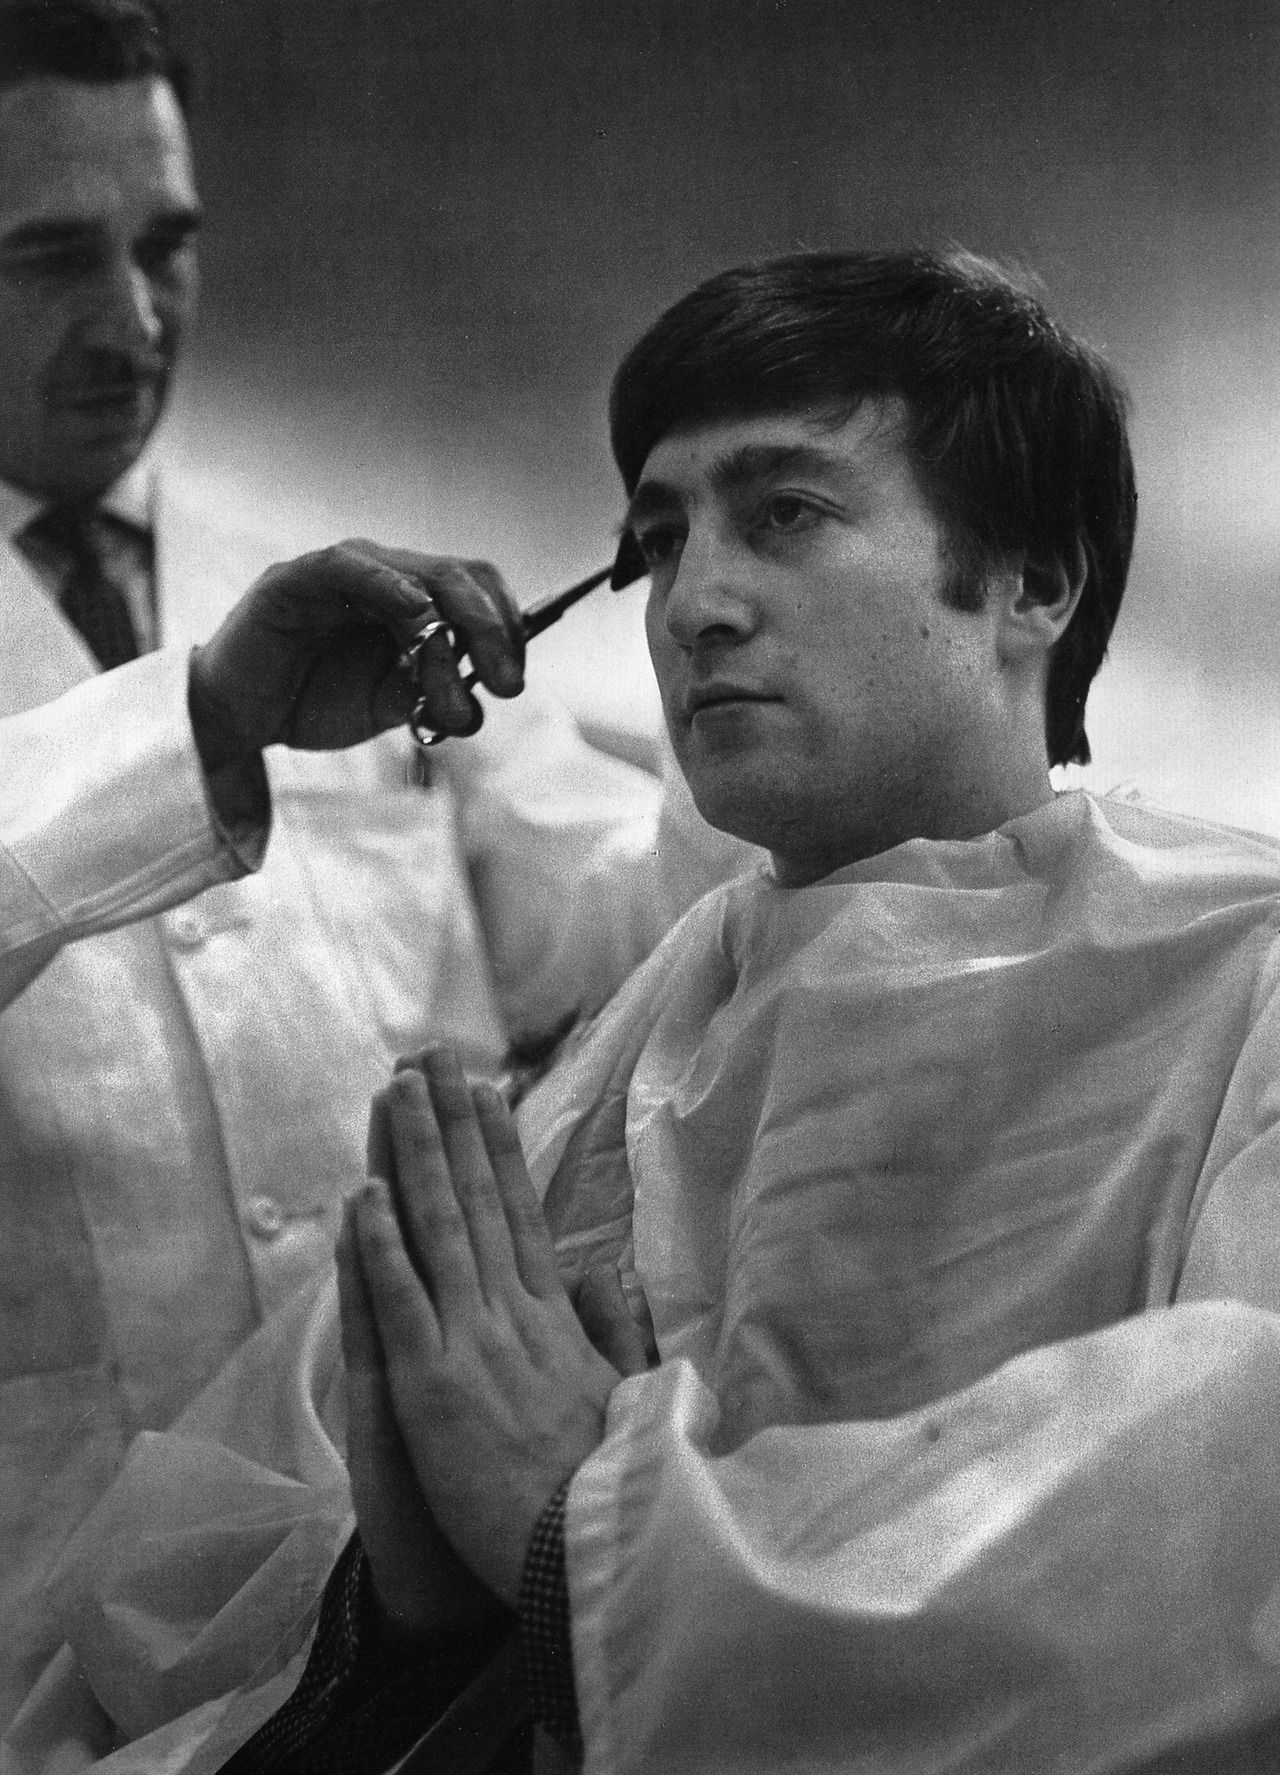 barber haircut vintage do the Beatles pray praying